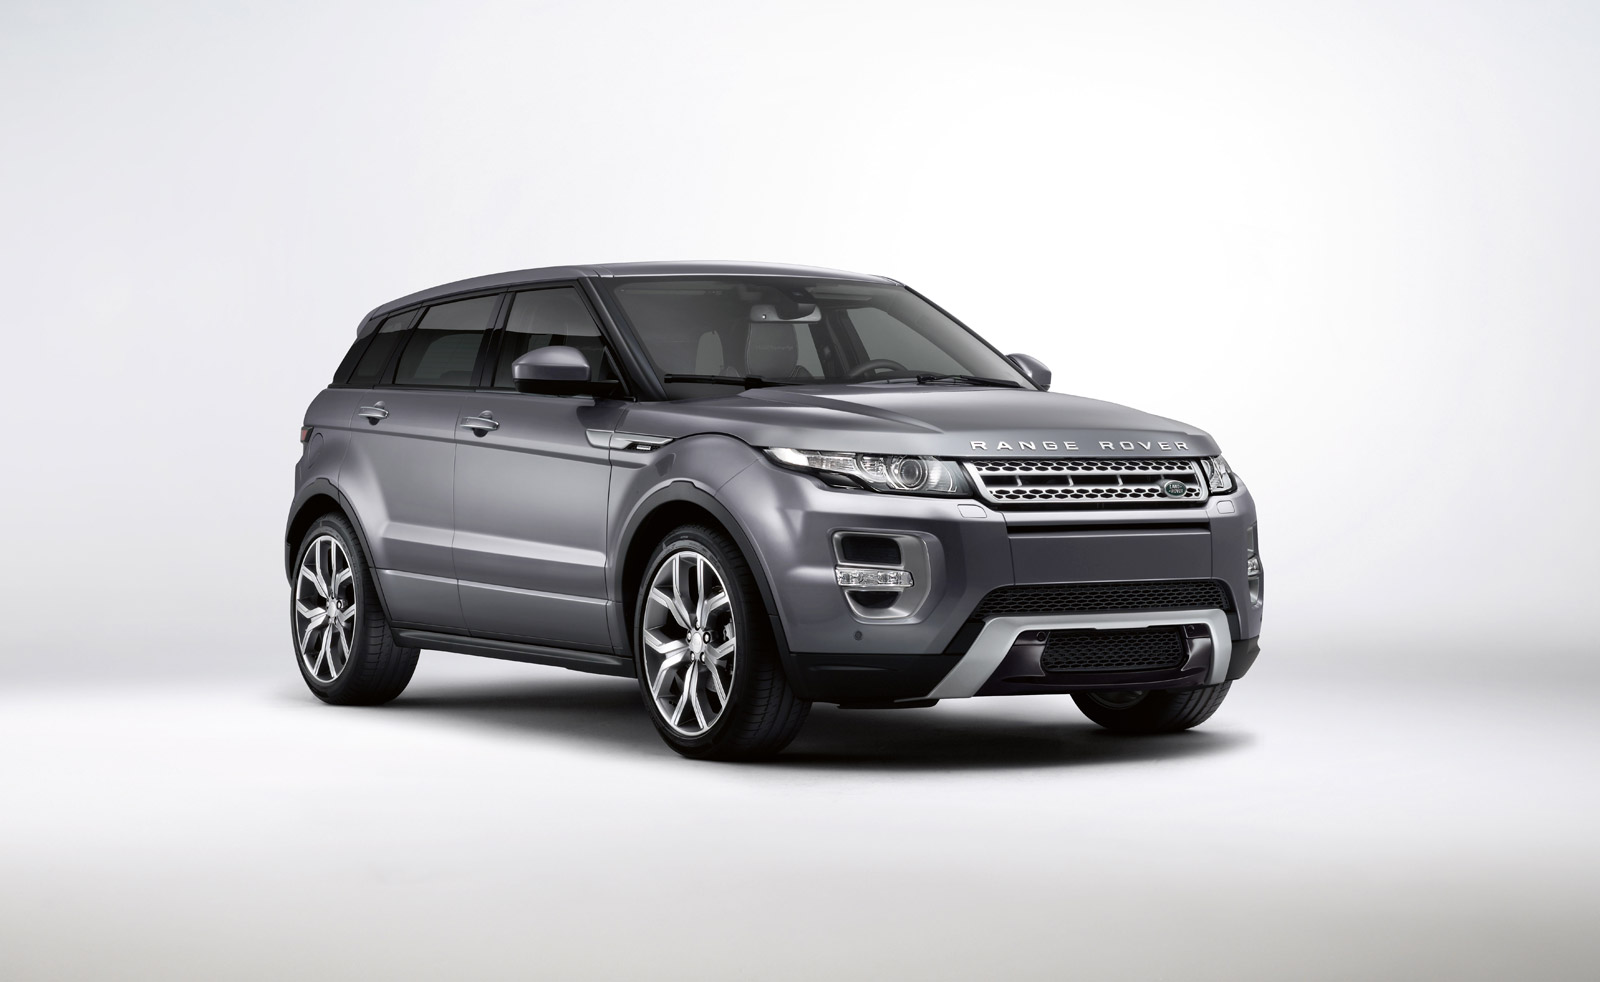 2015 Land Rover Range Rover Evoque Review Ratings Specs